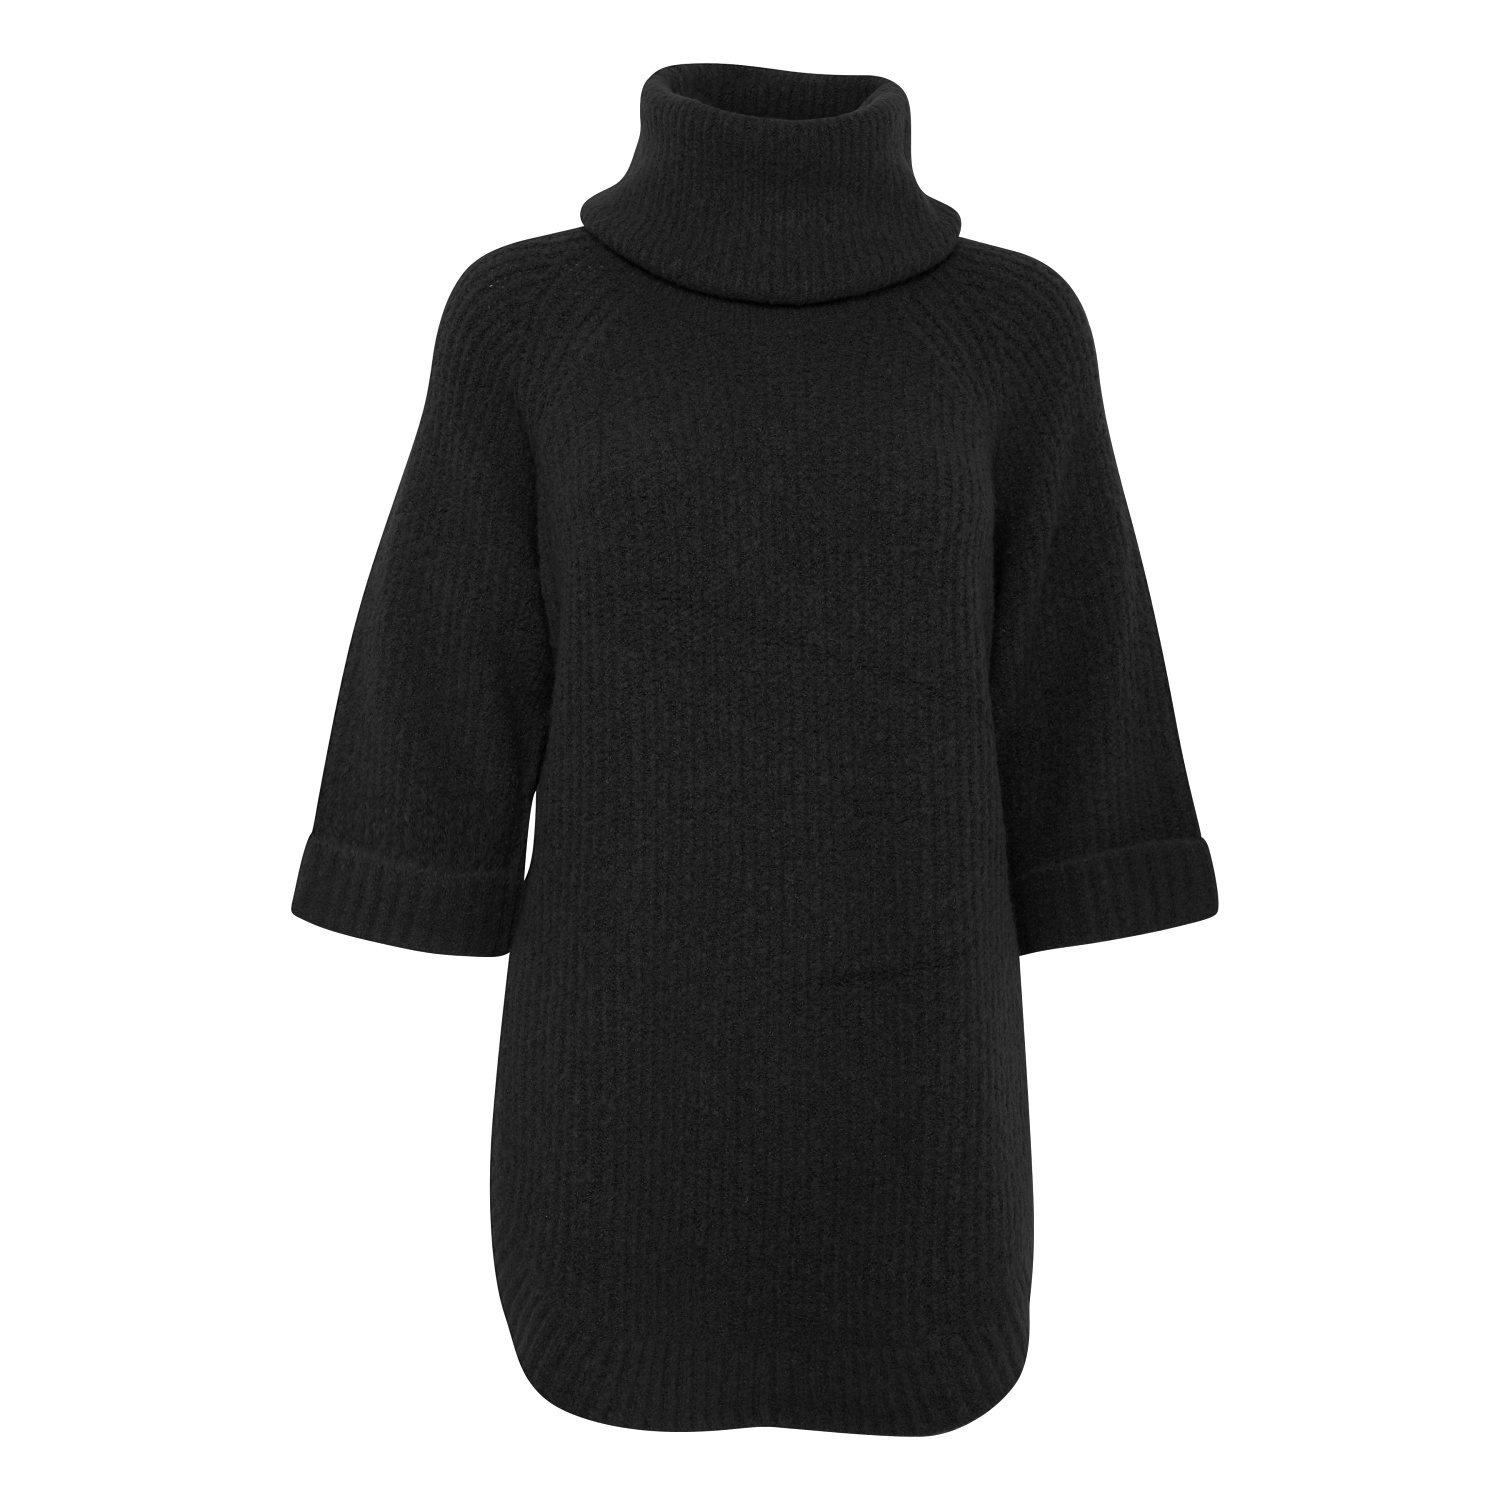 B Young mirelle roll neck